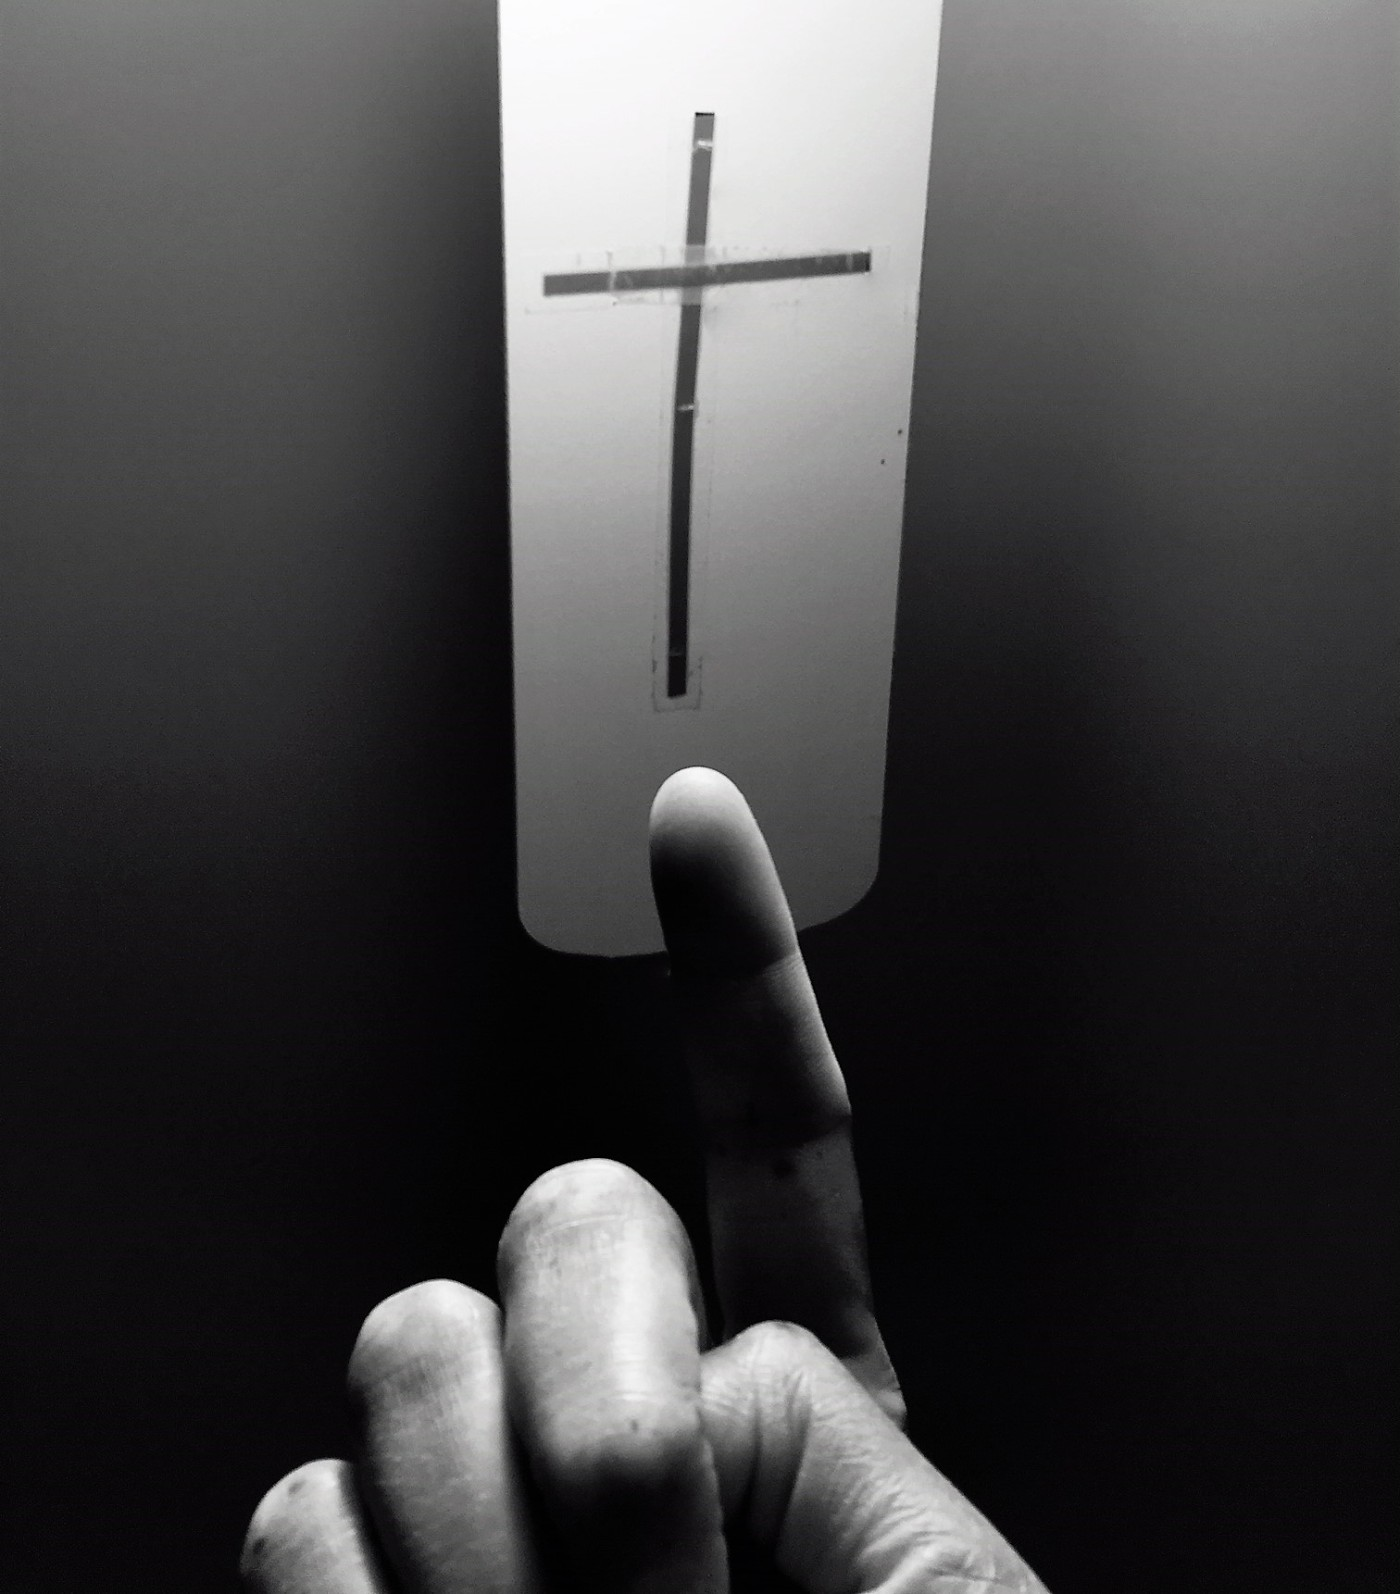 finger pointing to a cross